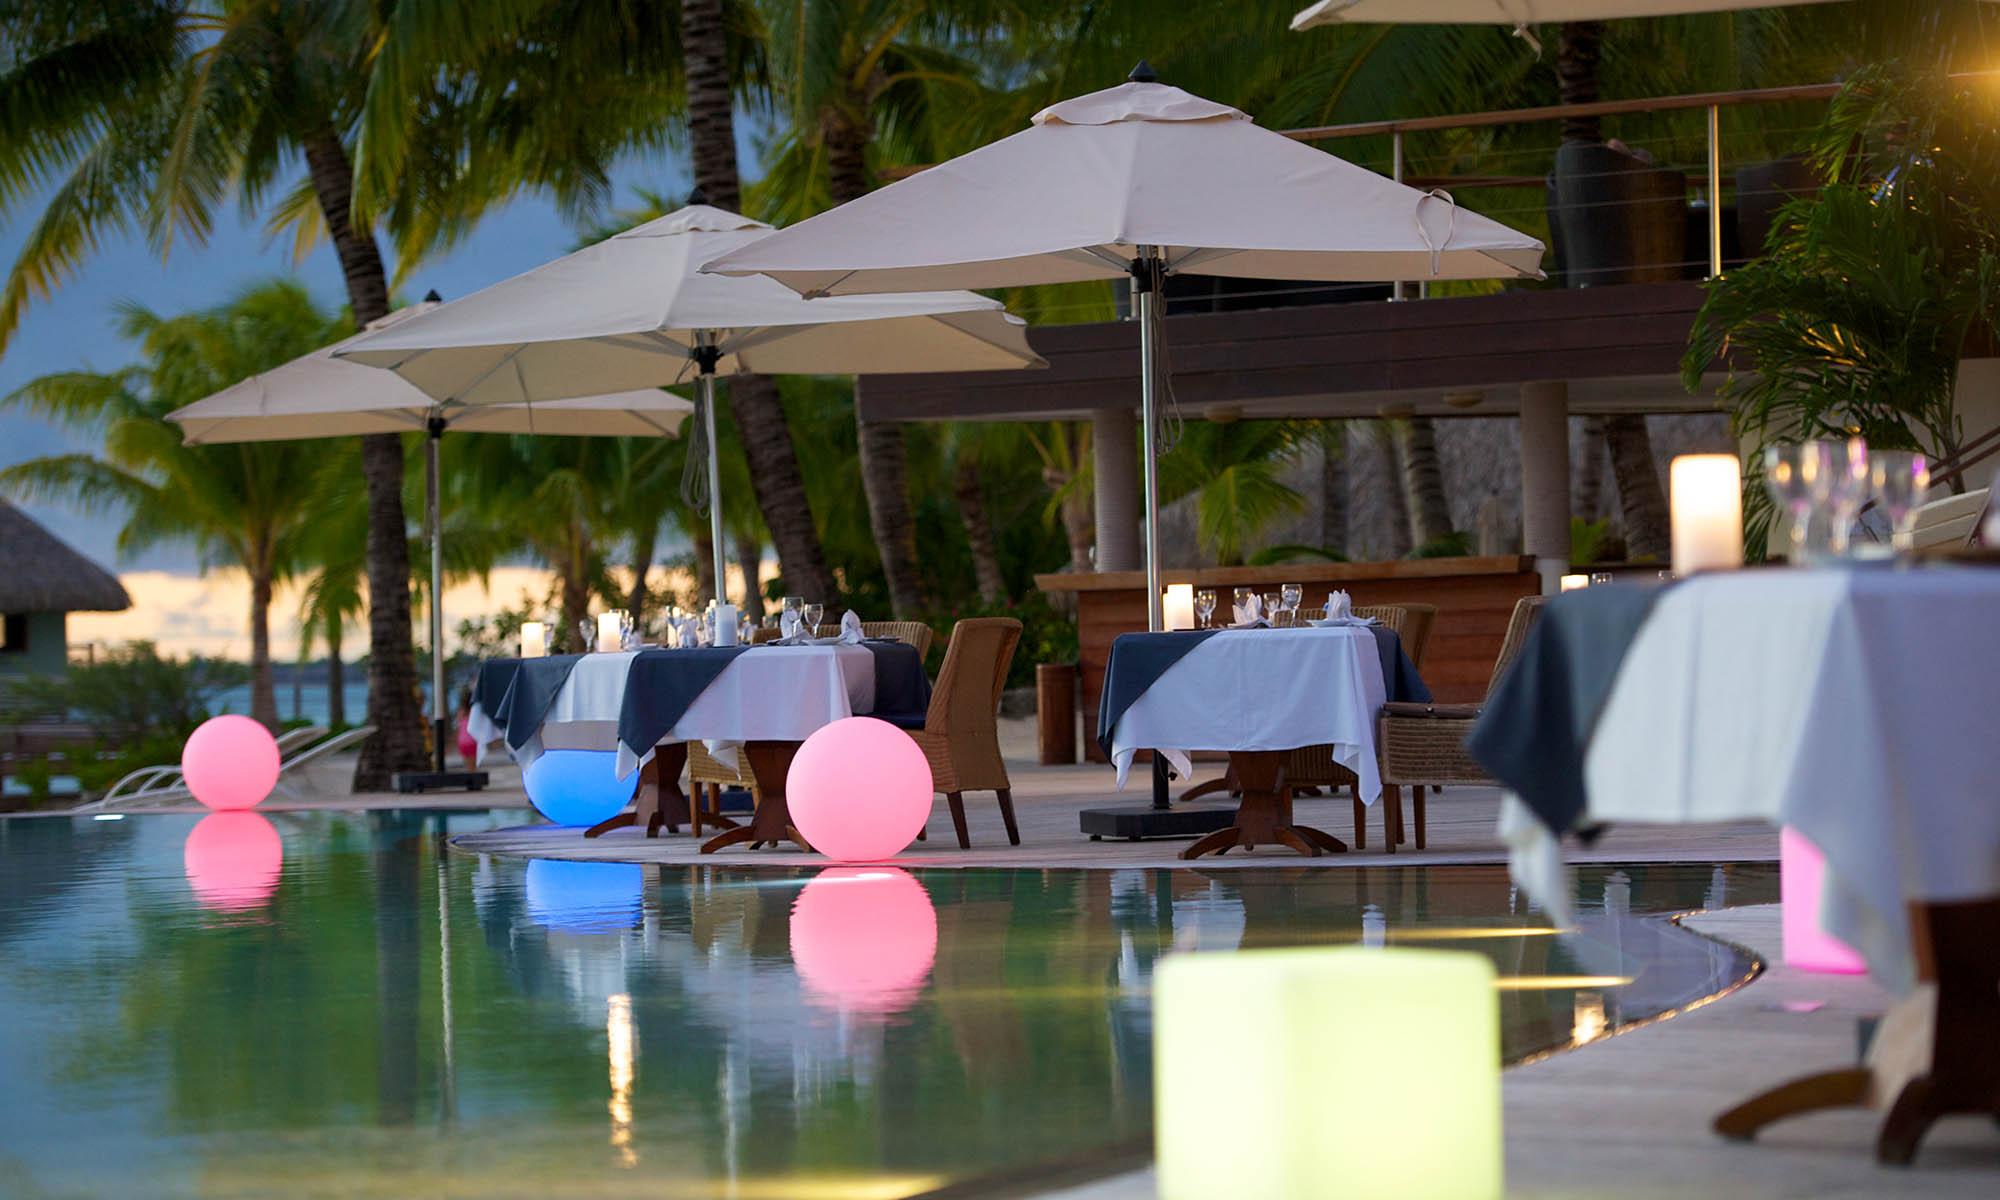 Al Fresco Dining at Le Meridien Bora Bora